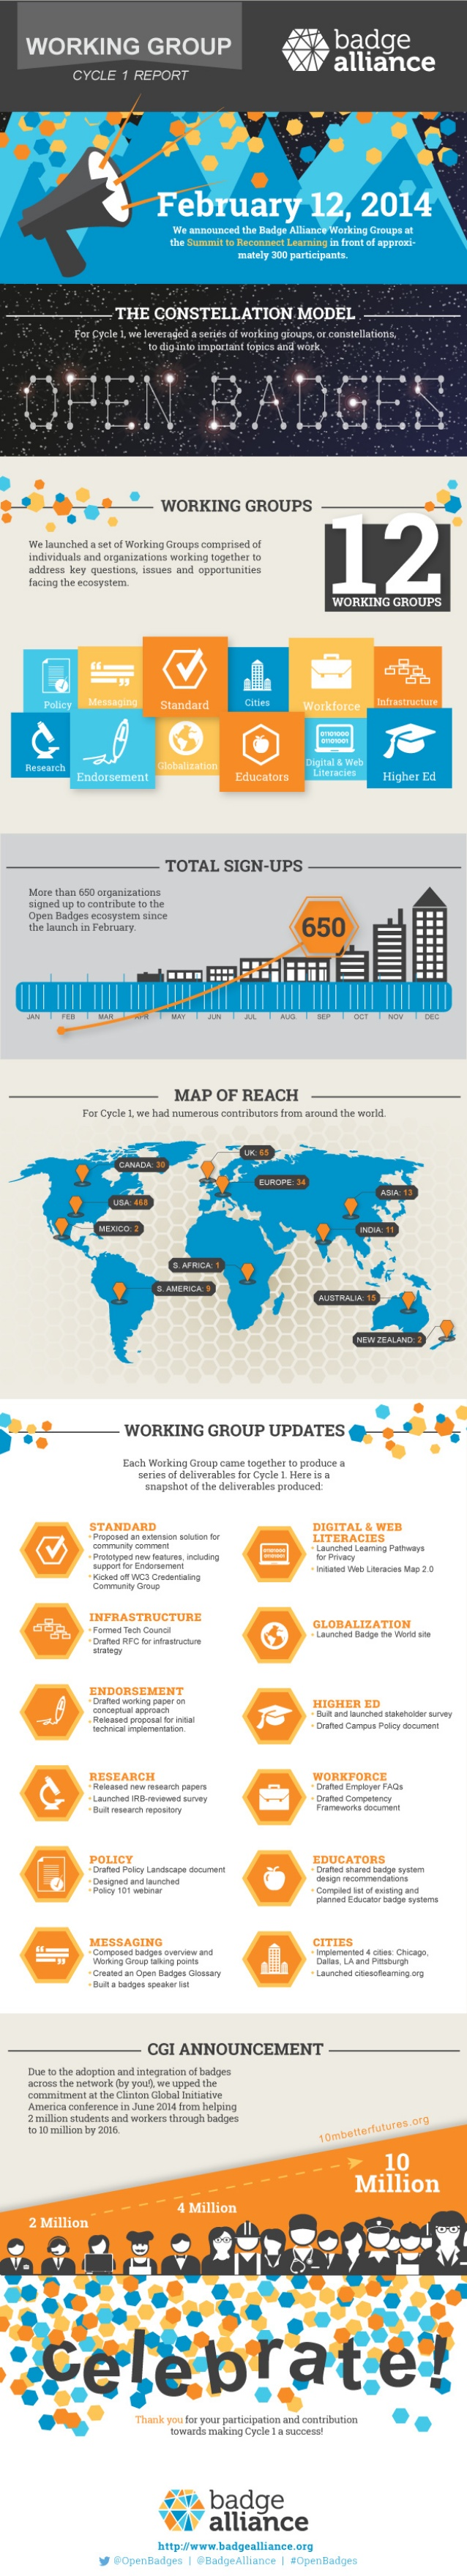 The global collaboration that is driving the development and adoption of effective Open Badging strategies and systems.